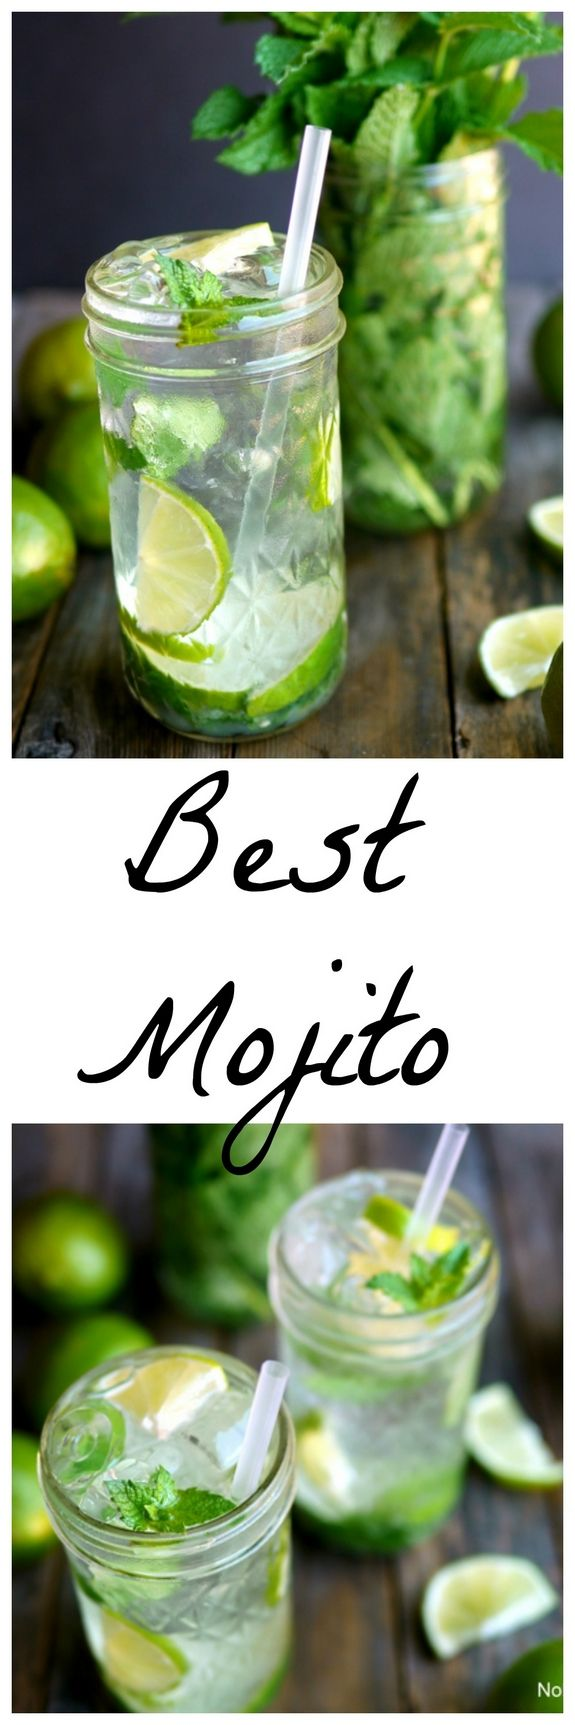 After extensive recipe testing THIS is The Best Mojito. I have listed my tips and tricks for making what I consider THE BEST Mojito on the planet...just ask my friends.